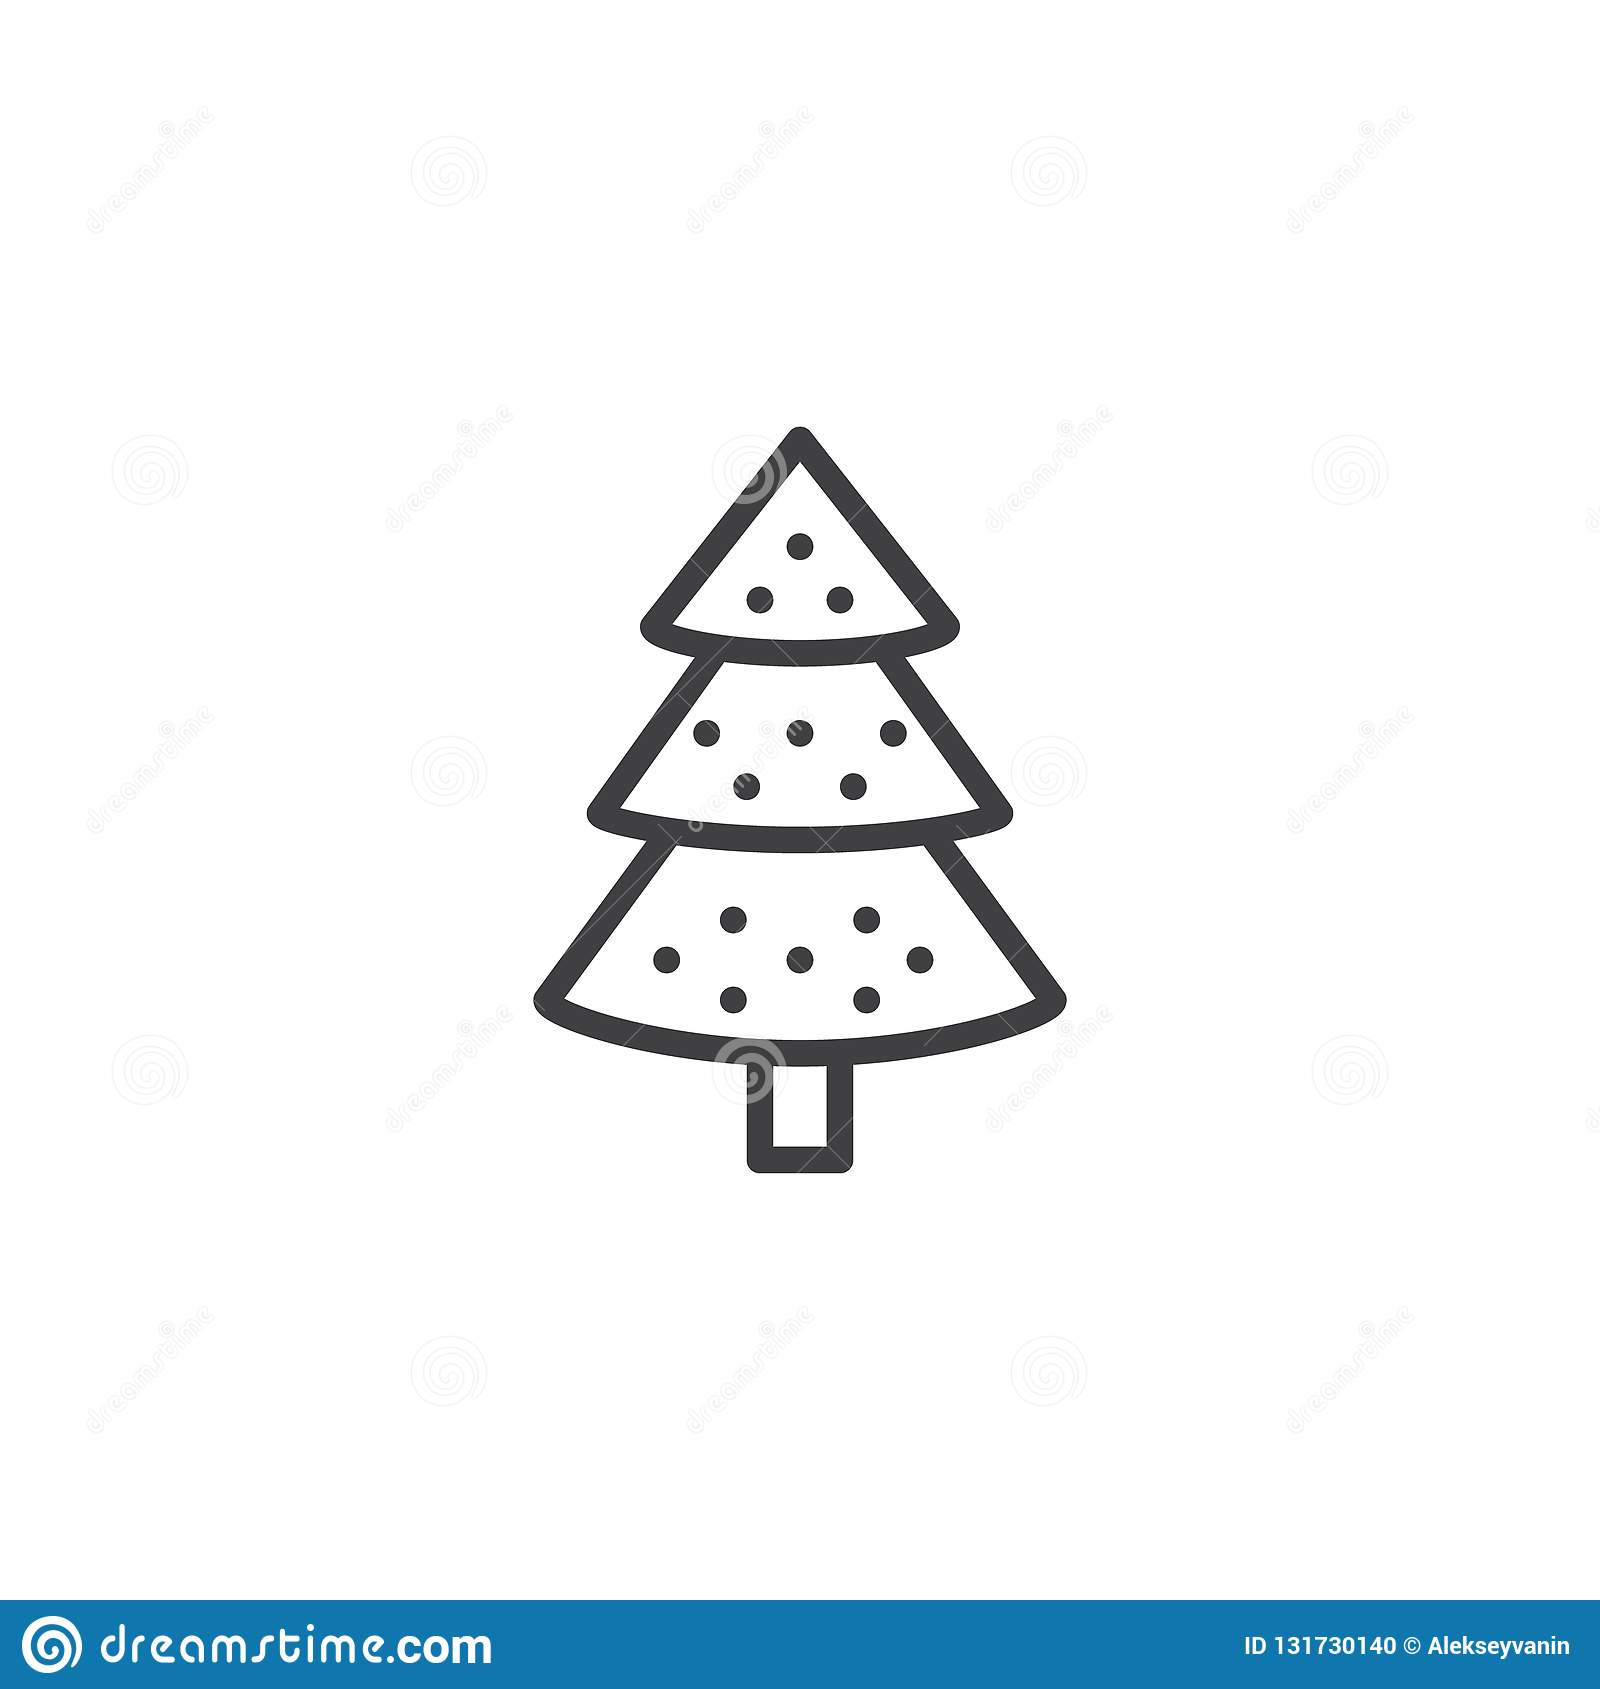 Decorated Christmas Tree Outline Icon Stock Vector Illustration Of